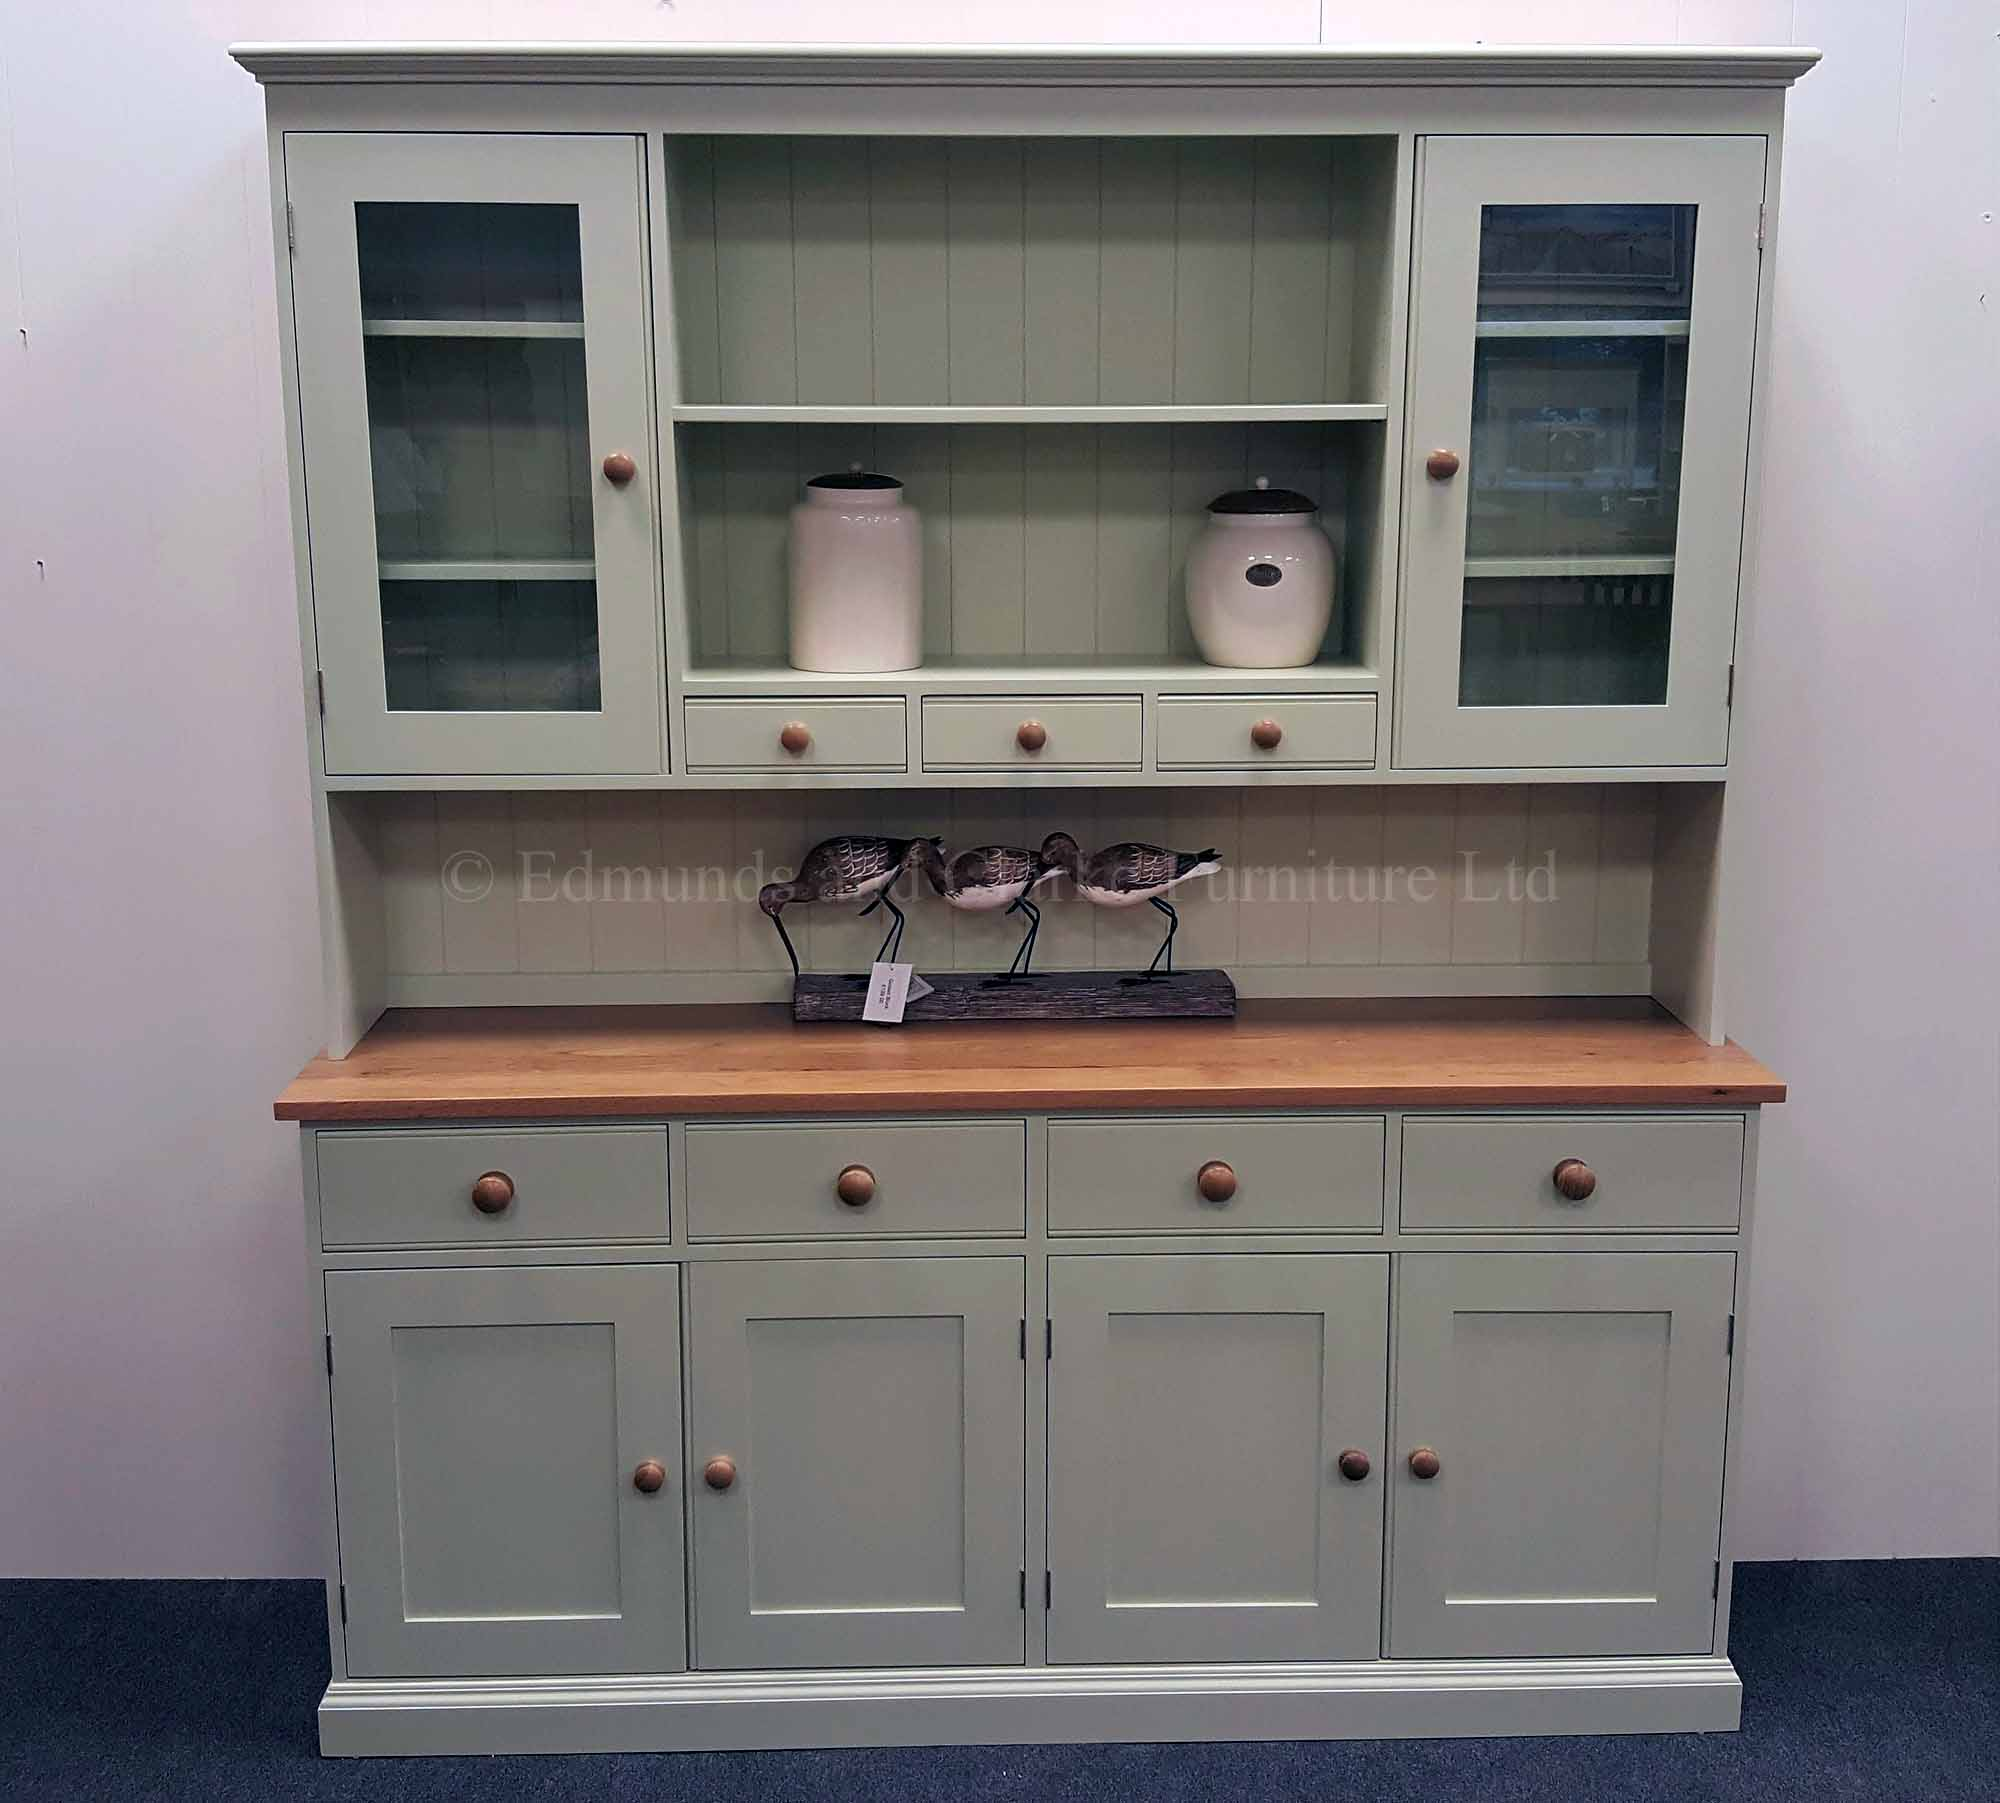 Plain Painted 6ft Kitchen Dresser. with spice racks , oak top and matching oak knobs. various colour and handle options available